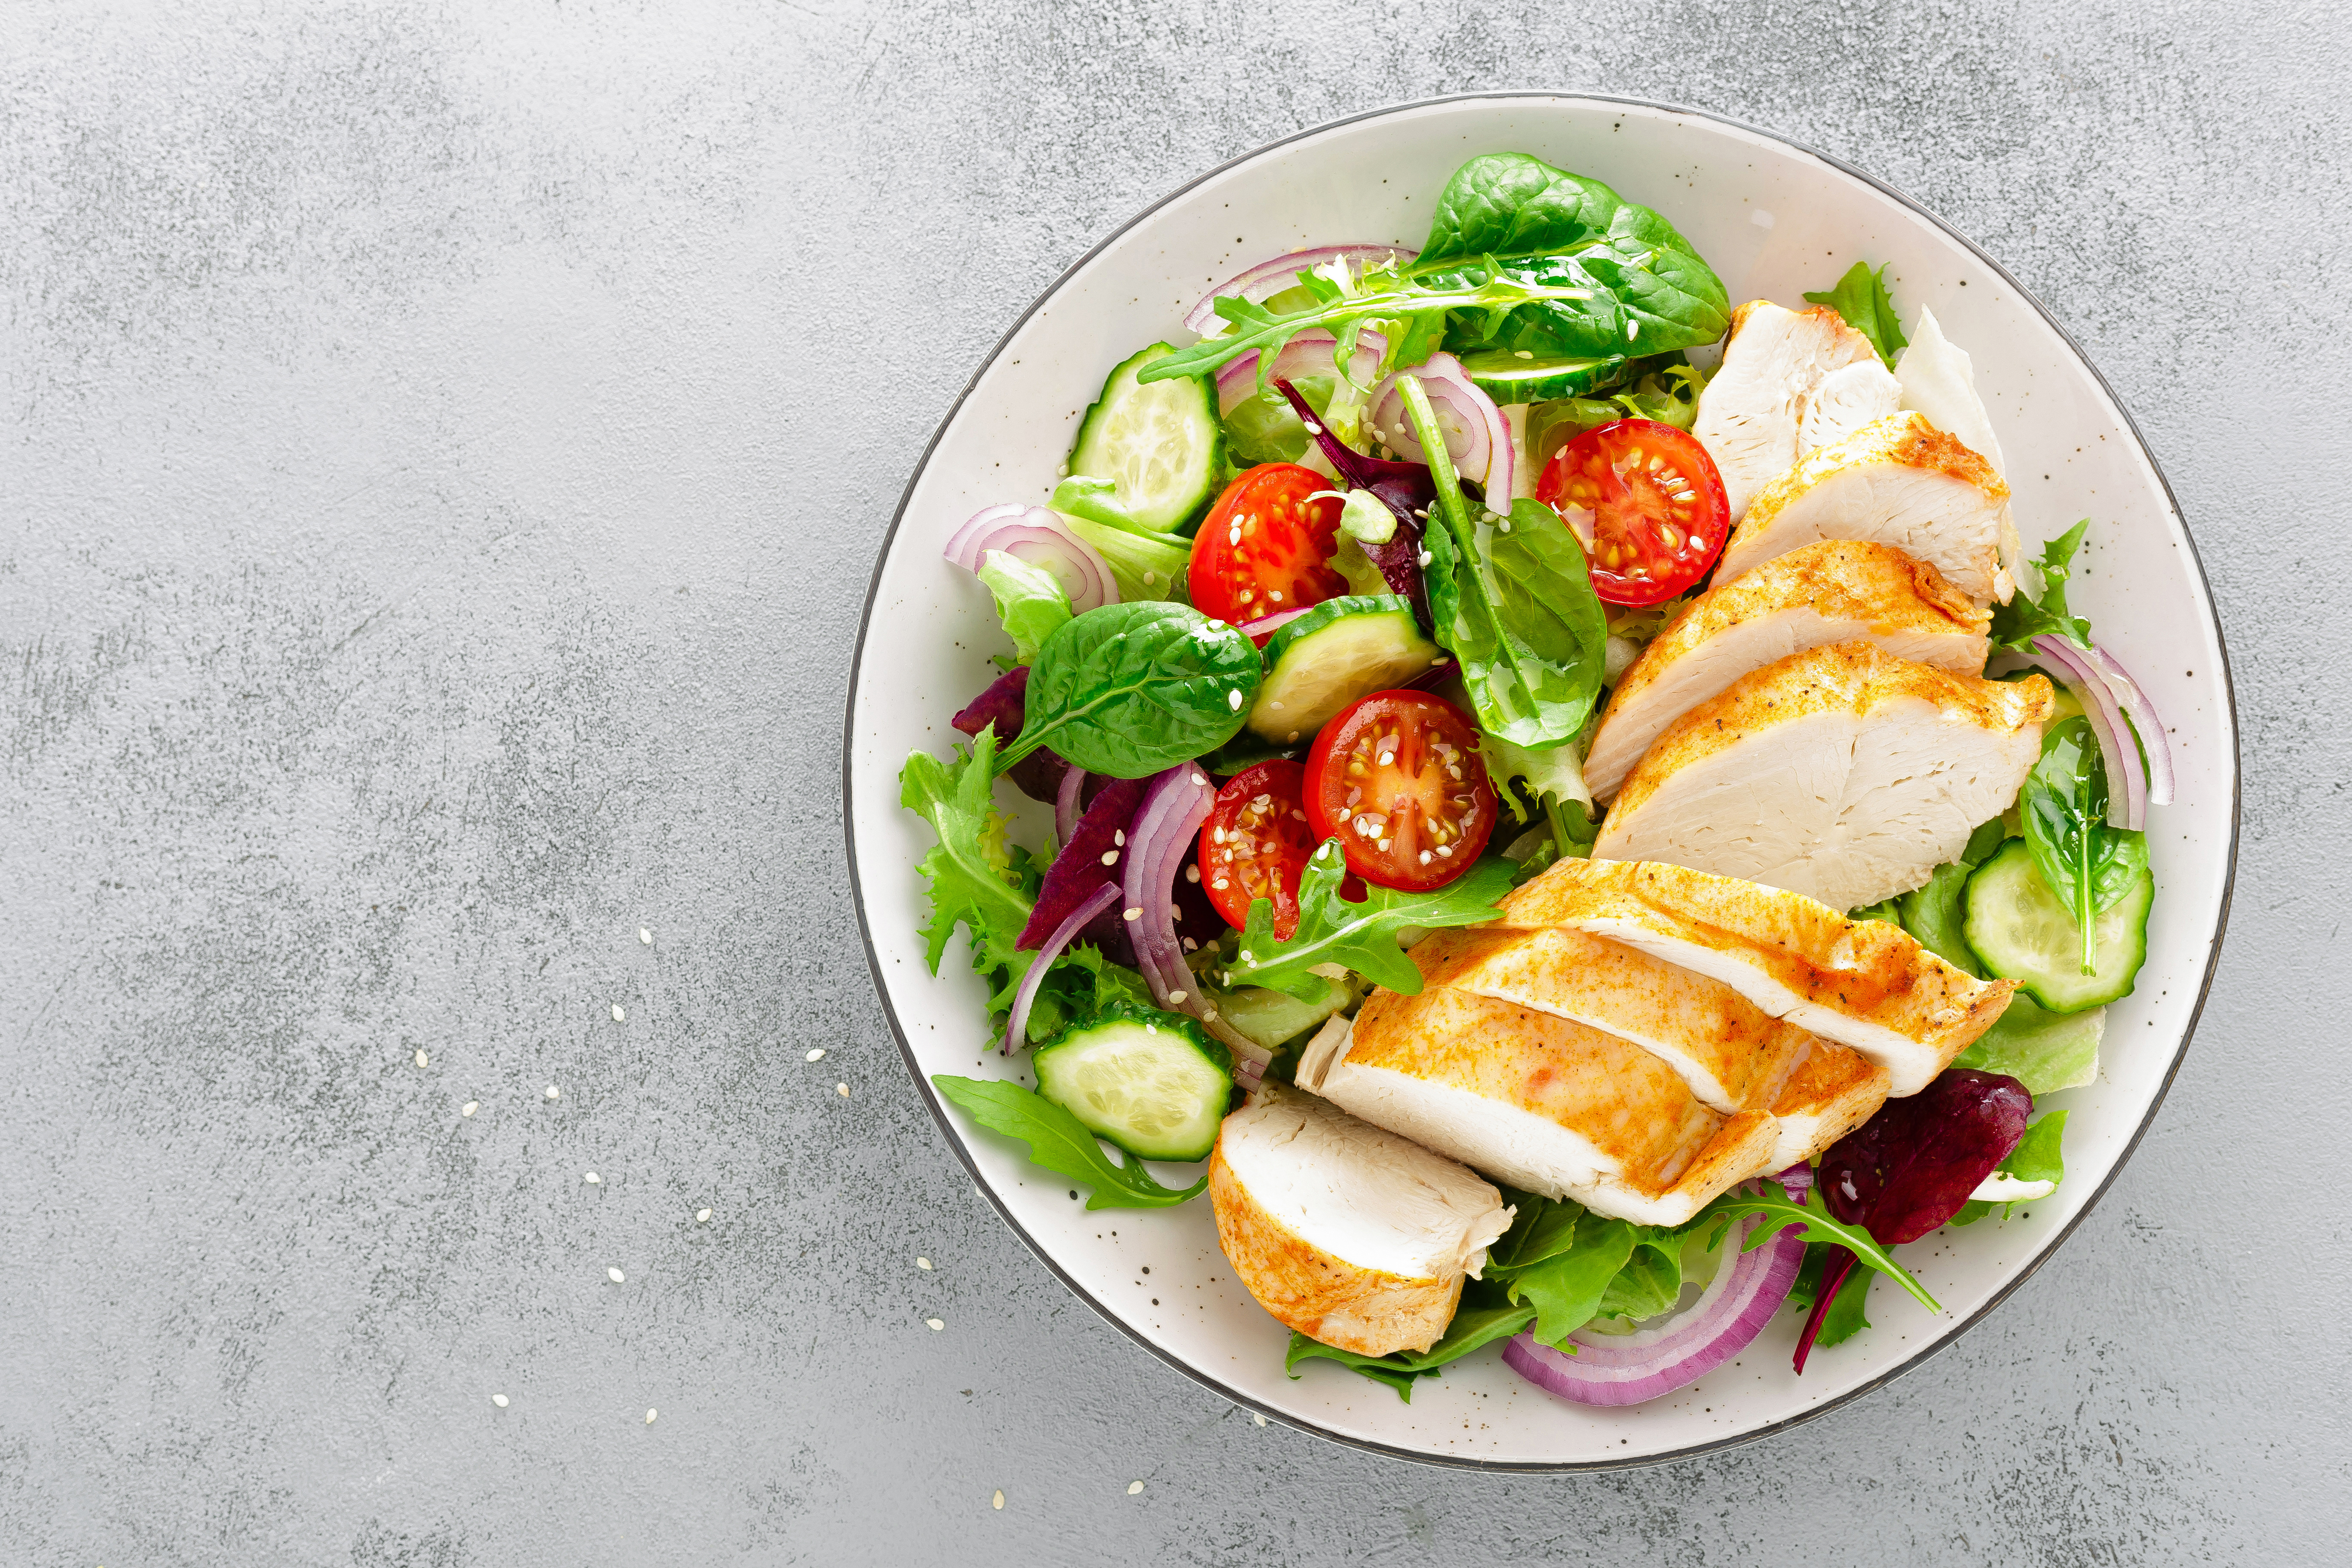 Image of salad with chicken